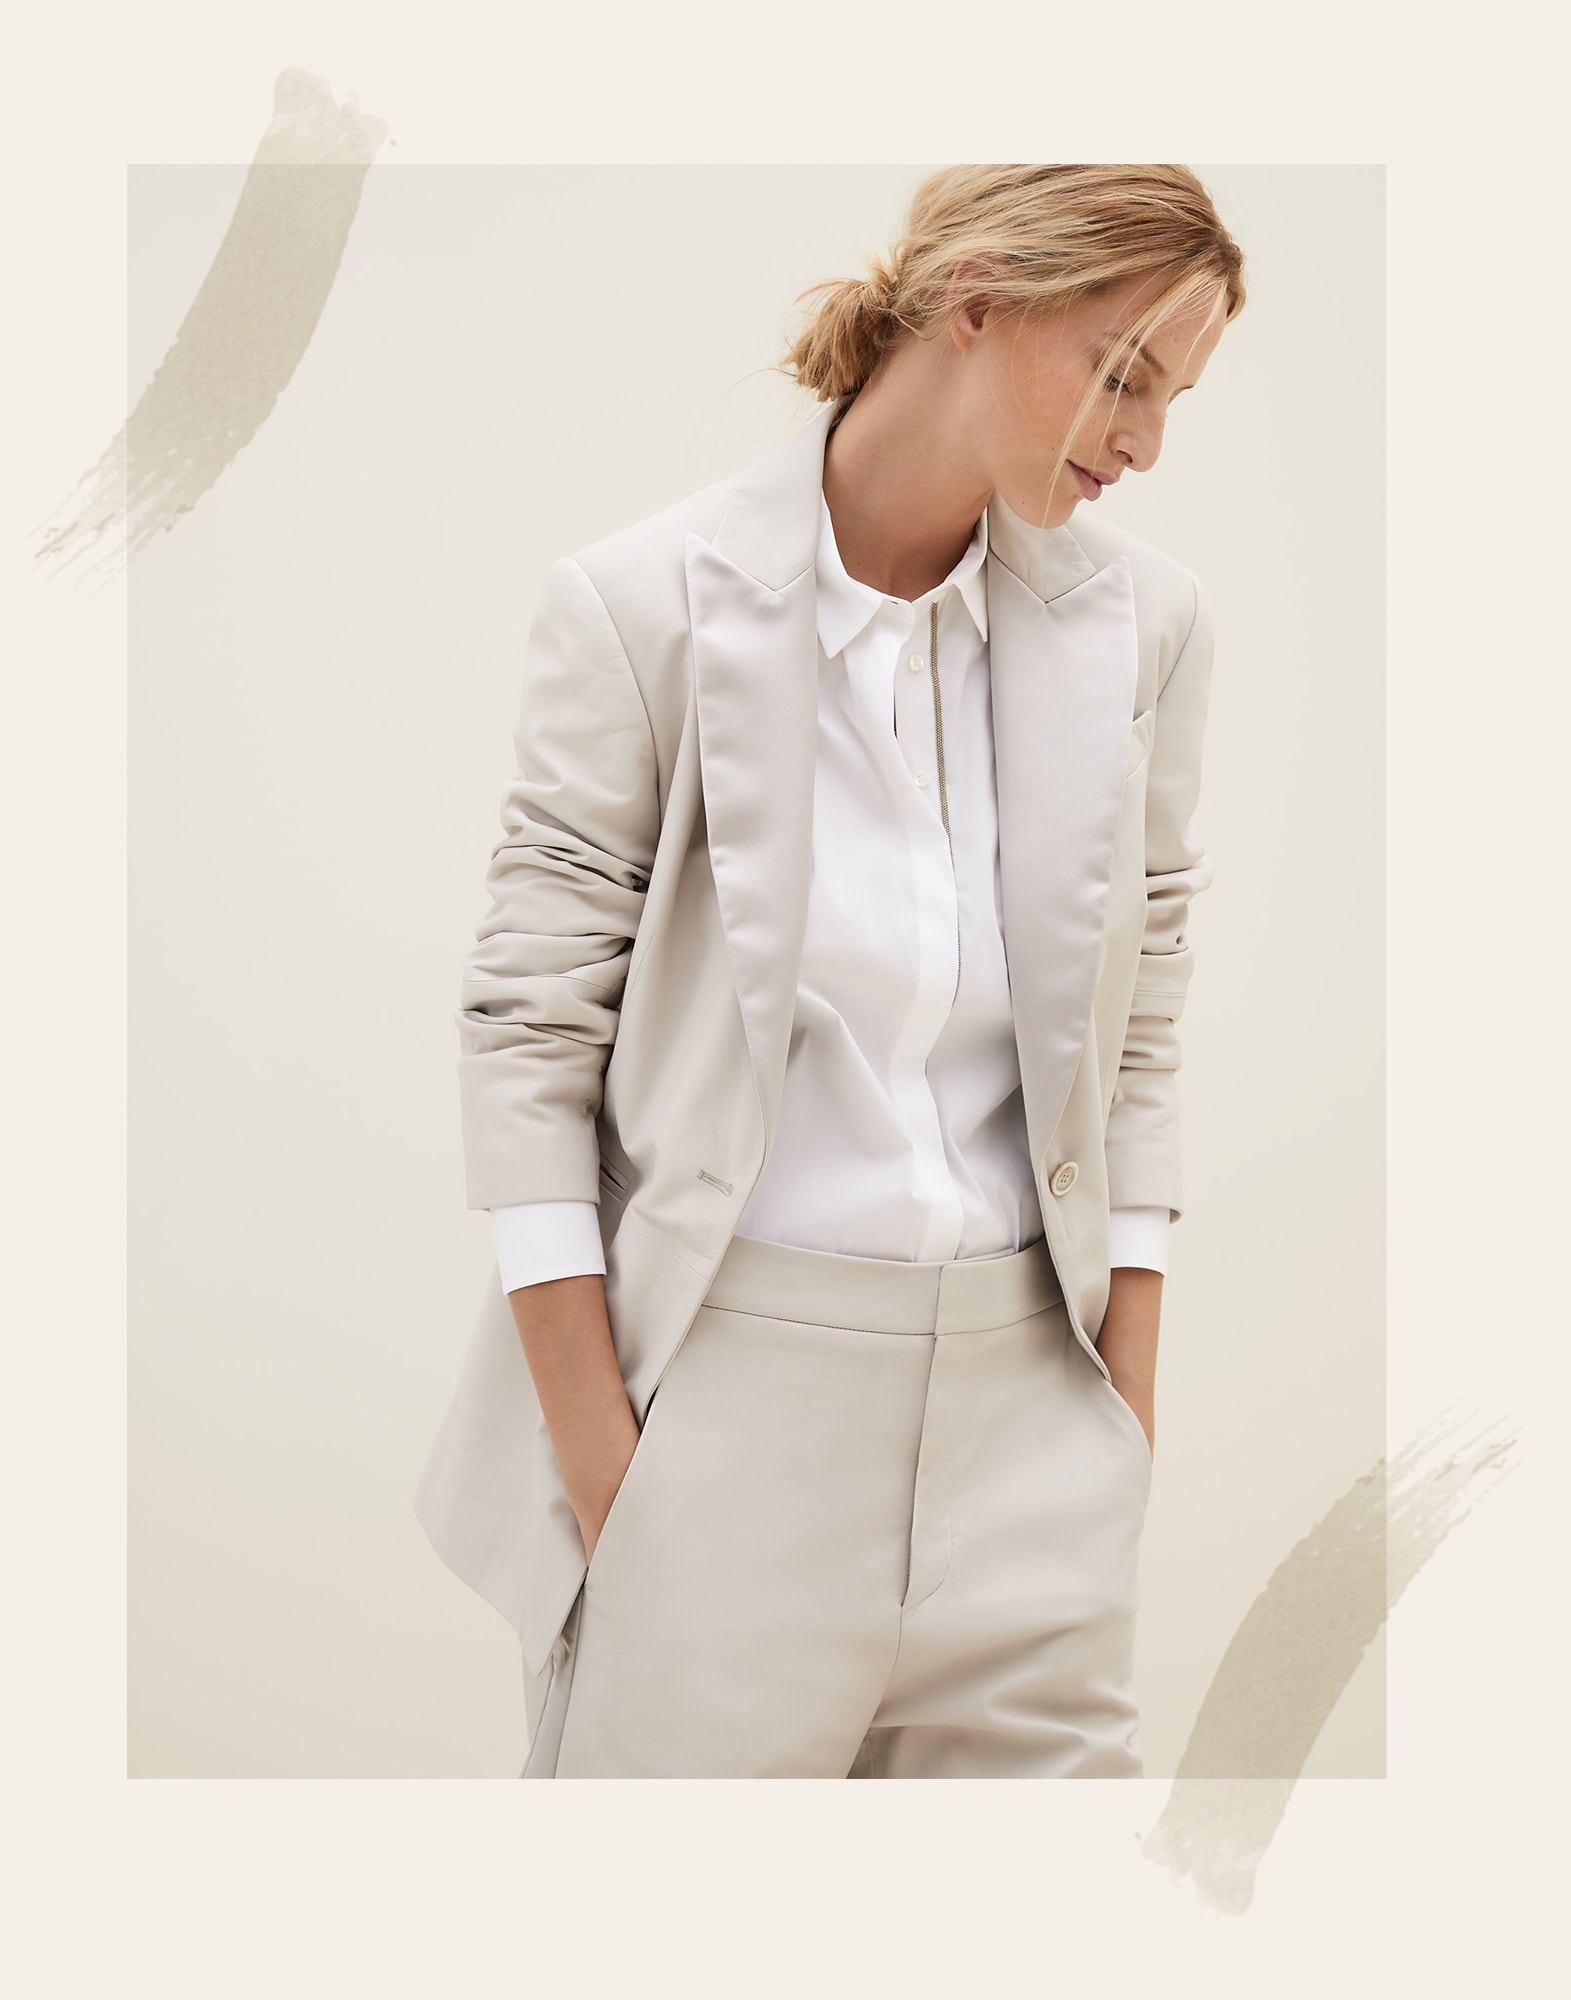 Fall-Winter 2019- Shades of White